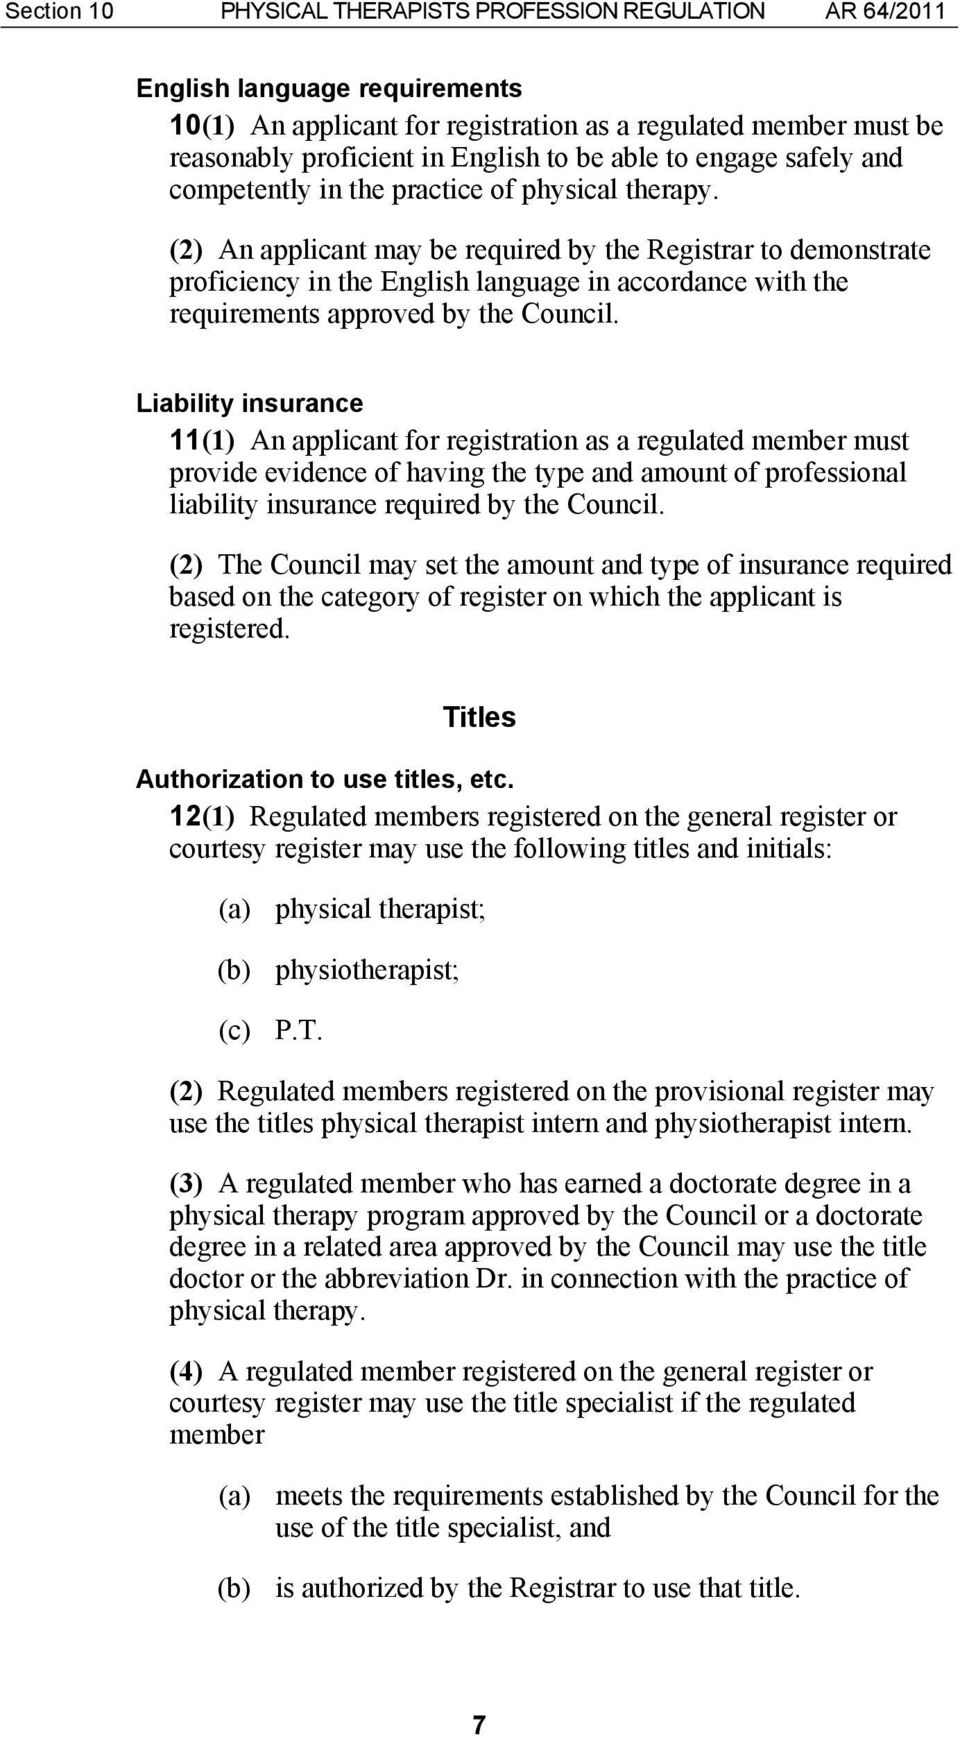 (2) An applicant may be required by the Registrar to demonstrate proficiency in the English language in accordance with the requirements approved by the Council.